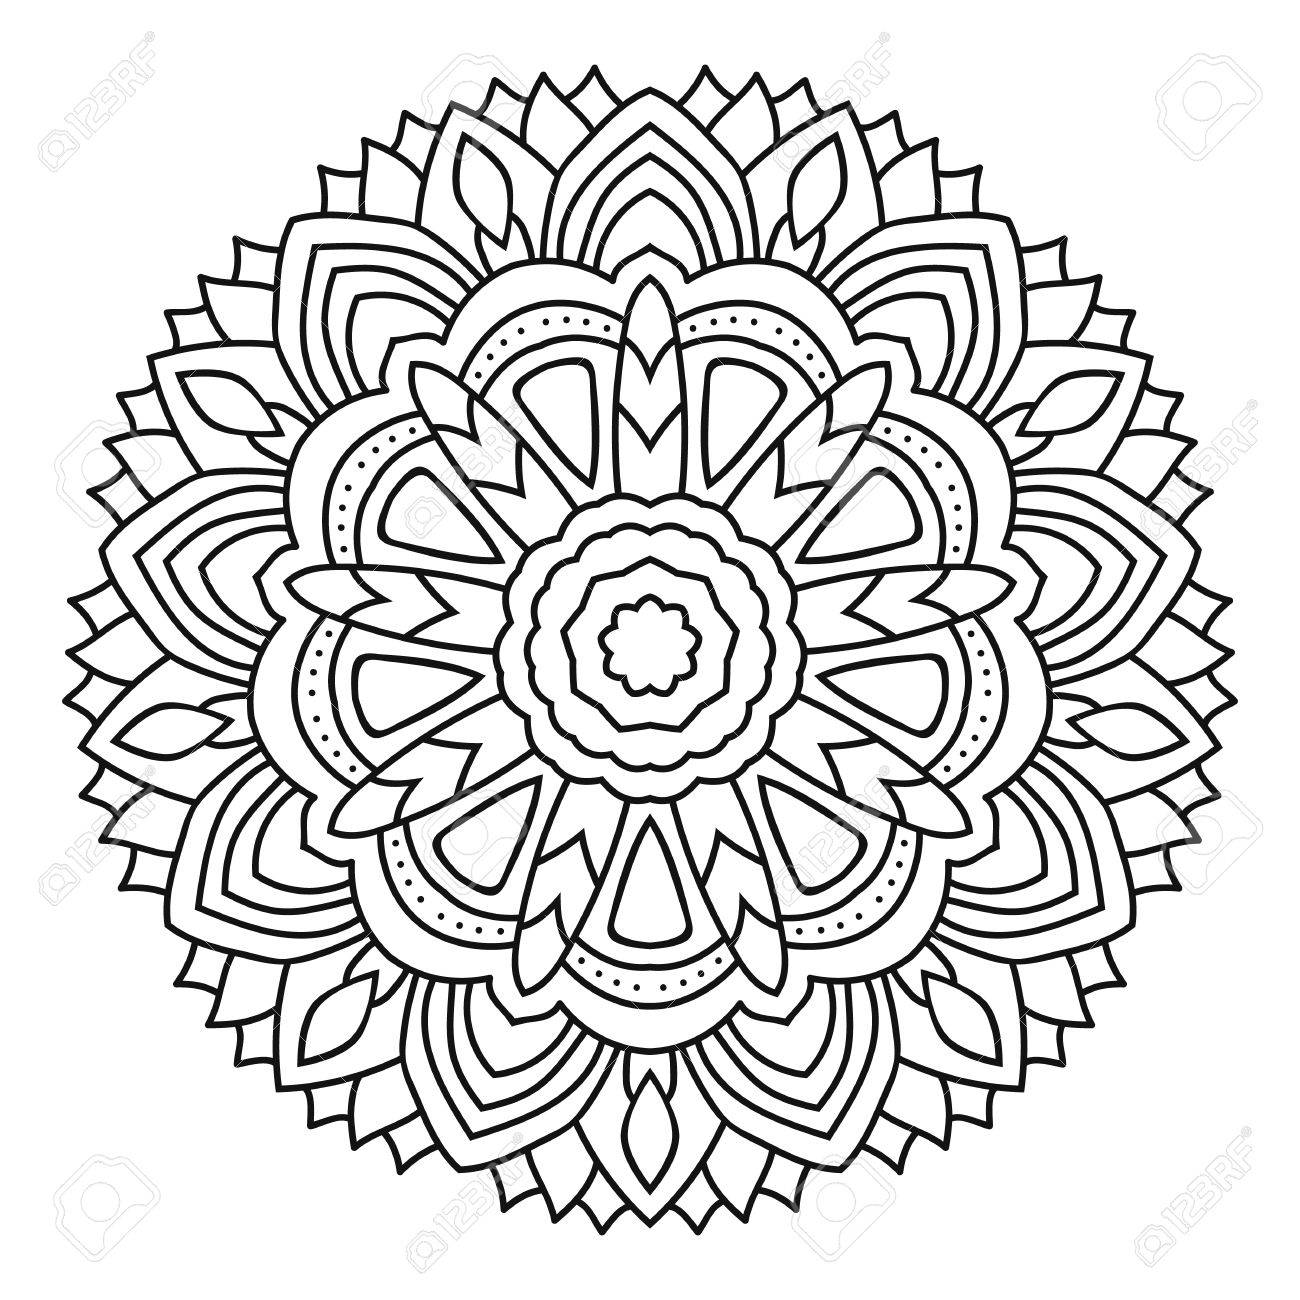 Vector Mandala Coloring Isolated On White Background Royalty Free